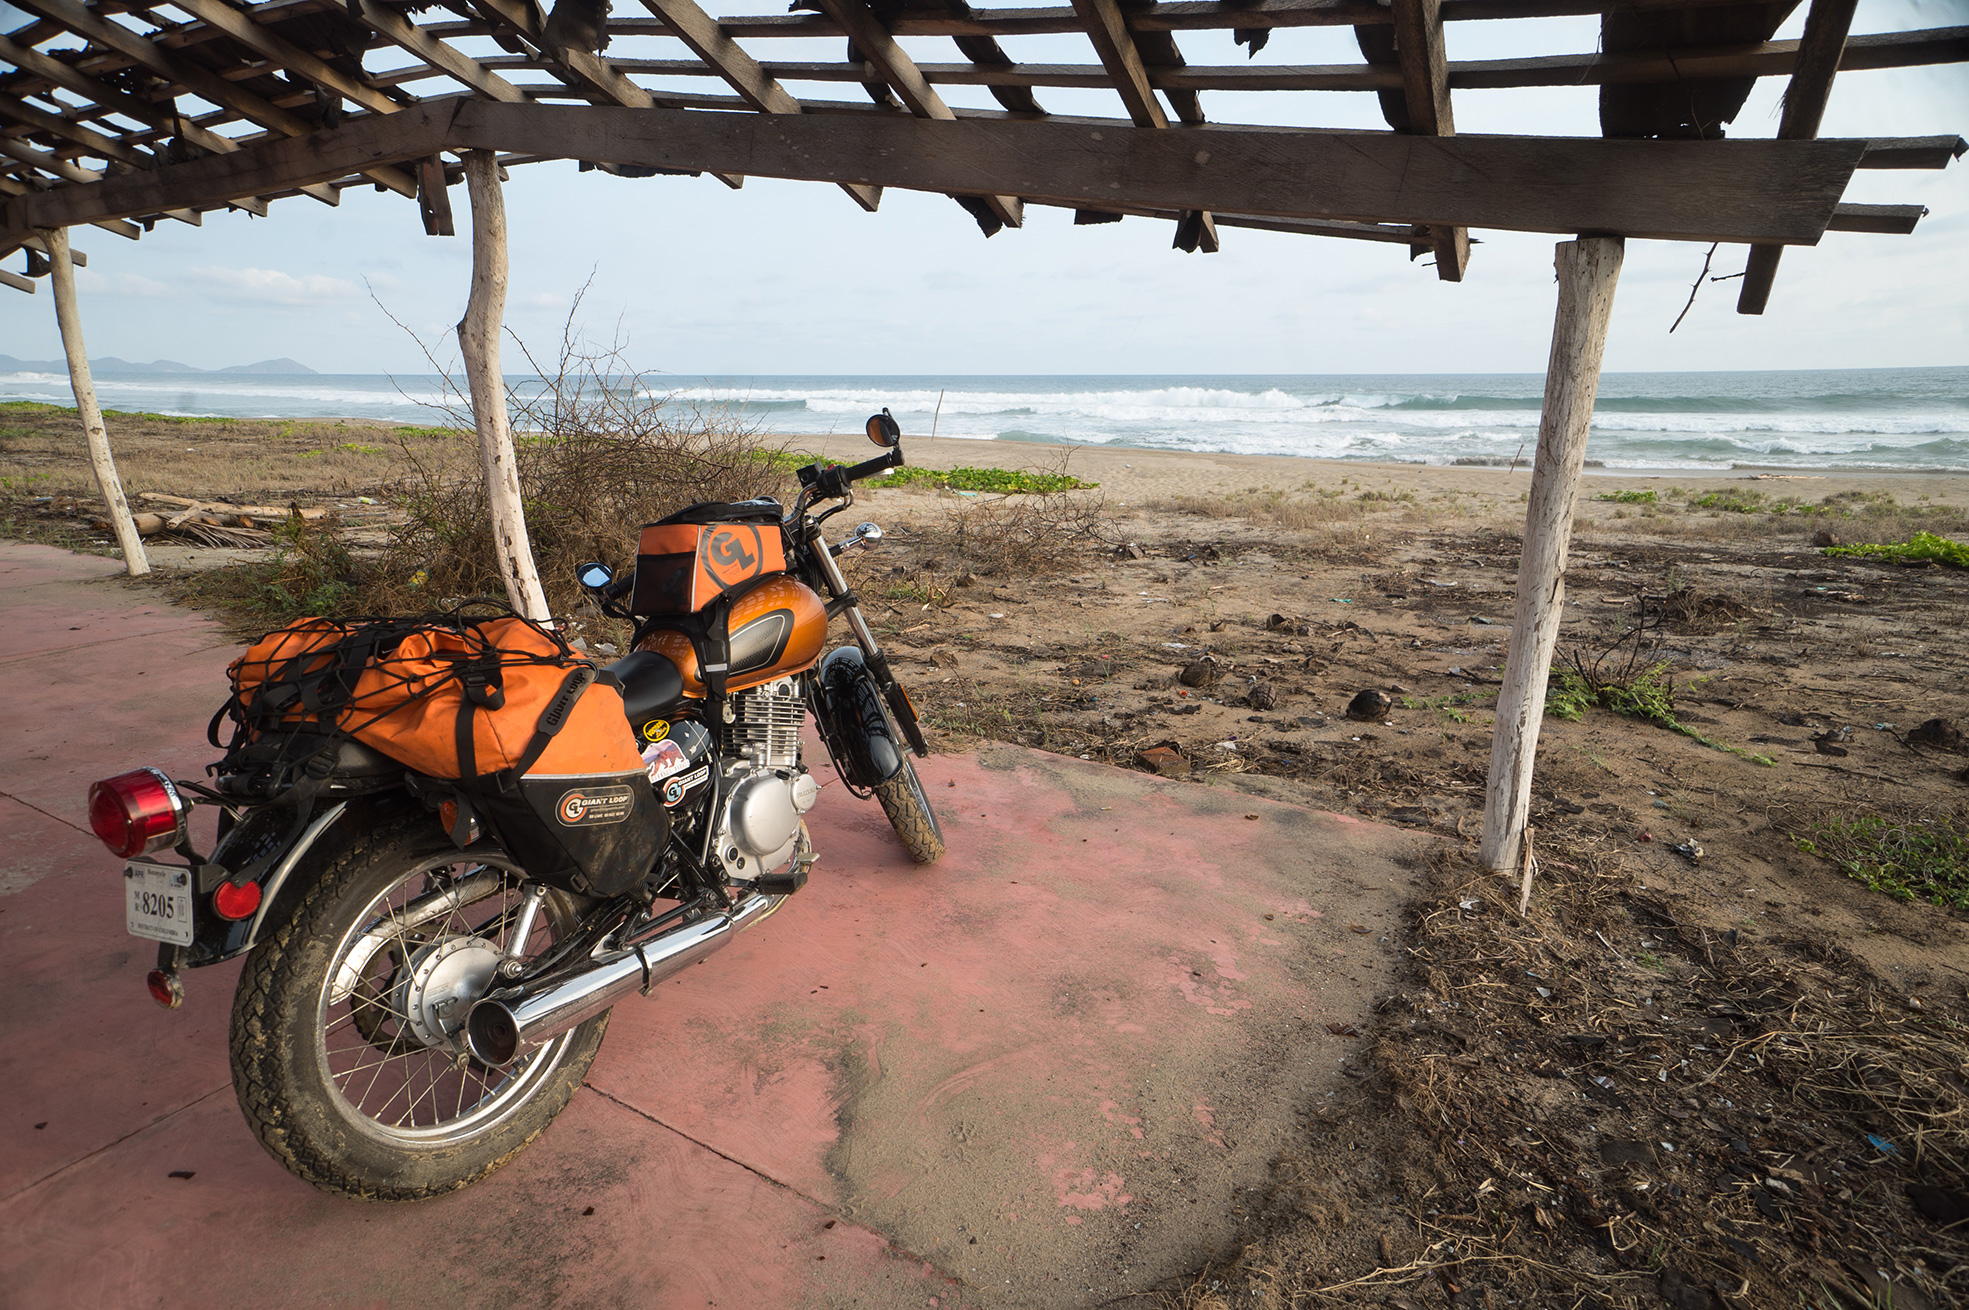 Of Motorcycles, Police, Wild Camping, and Cockroaches